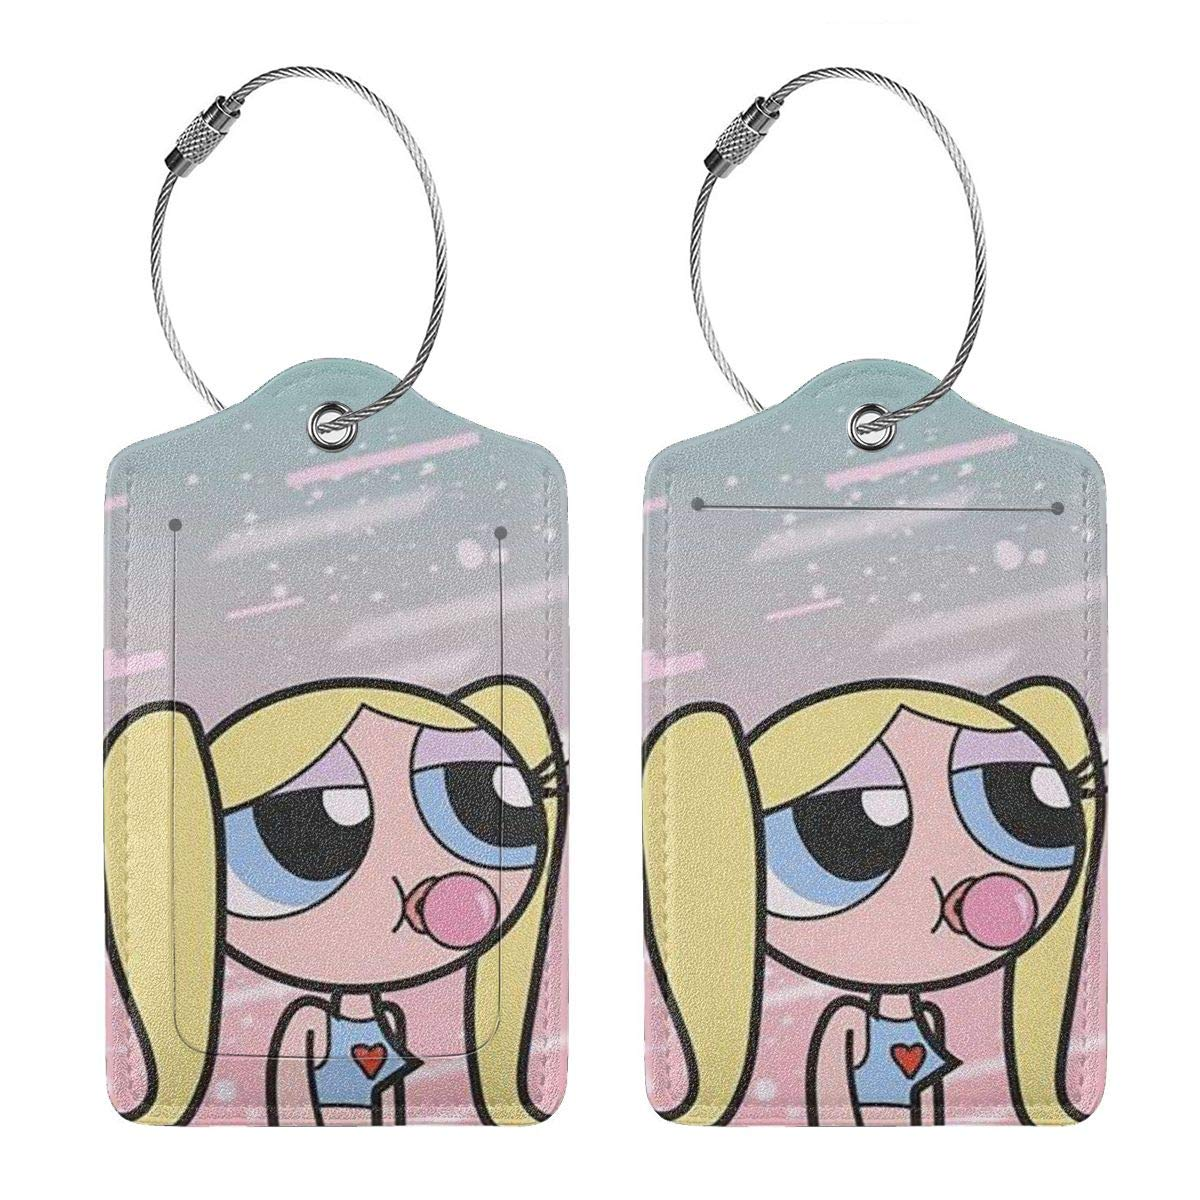 Fashion The Powerpuff Girls Soft Leather Luggage Tags With Privacy Cover 1-4 Pcs Choose Suit For Travel,Vacation